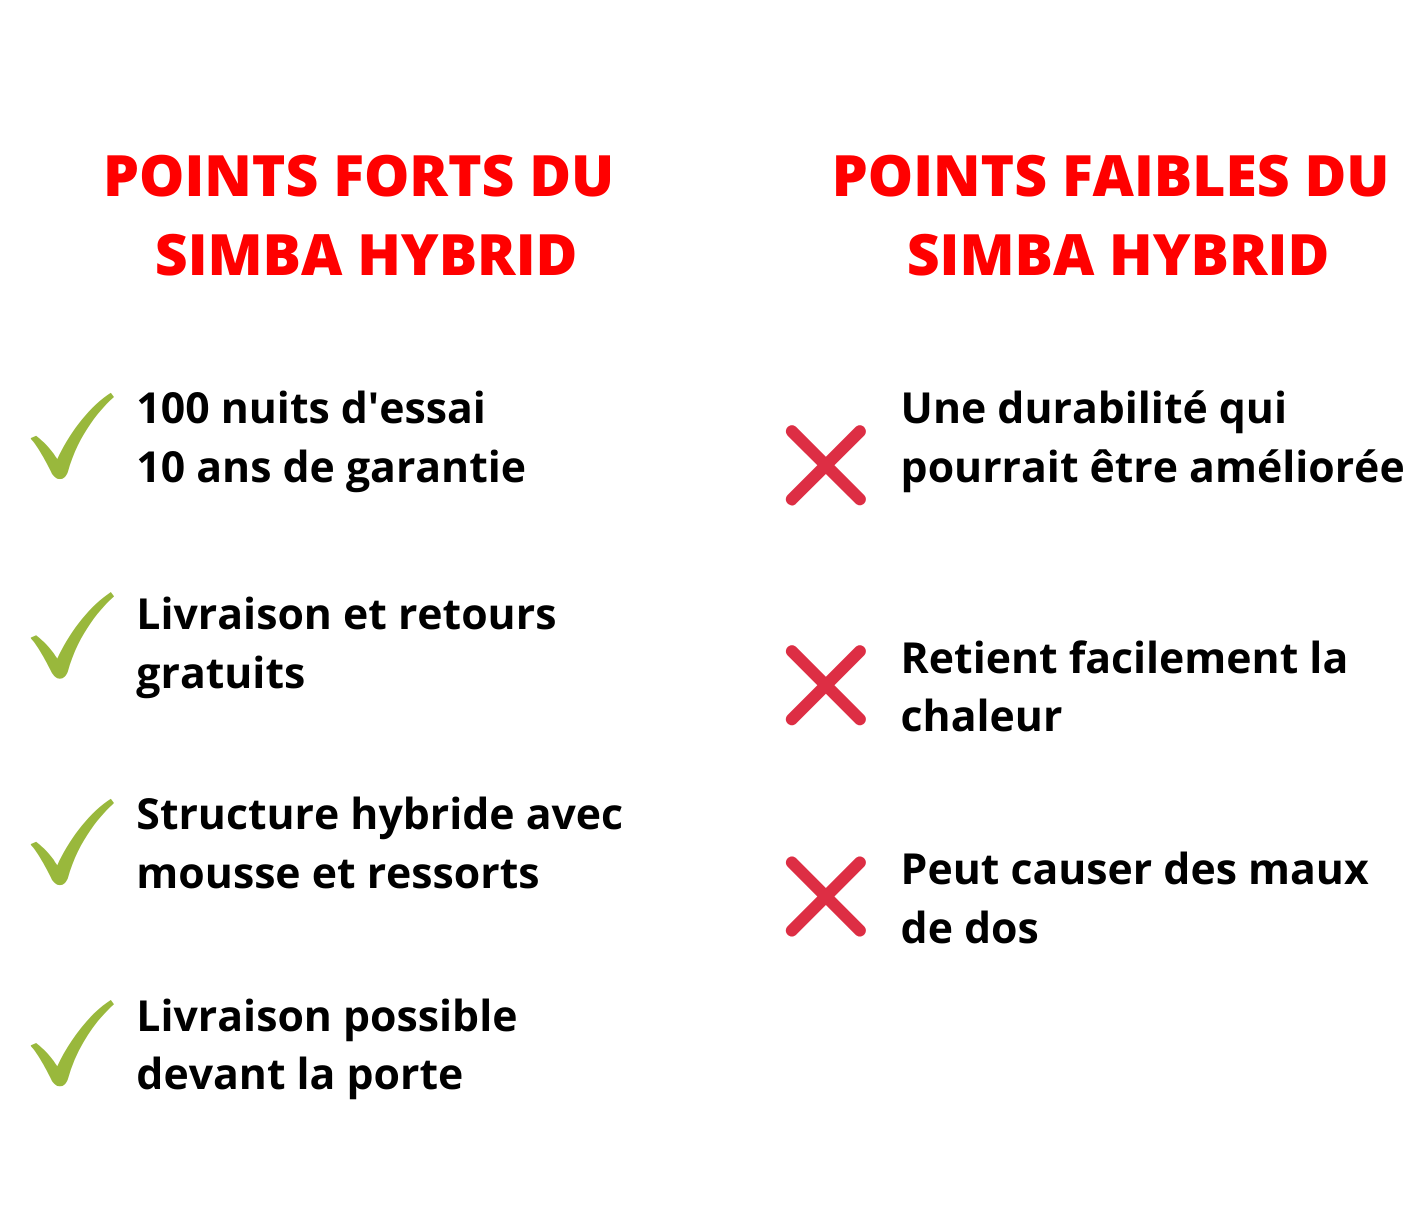 points forts et points faibles Simba Hybrid